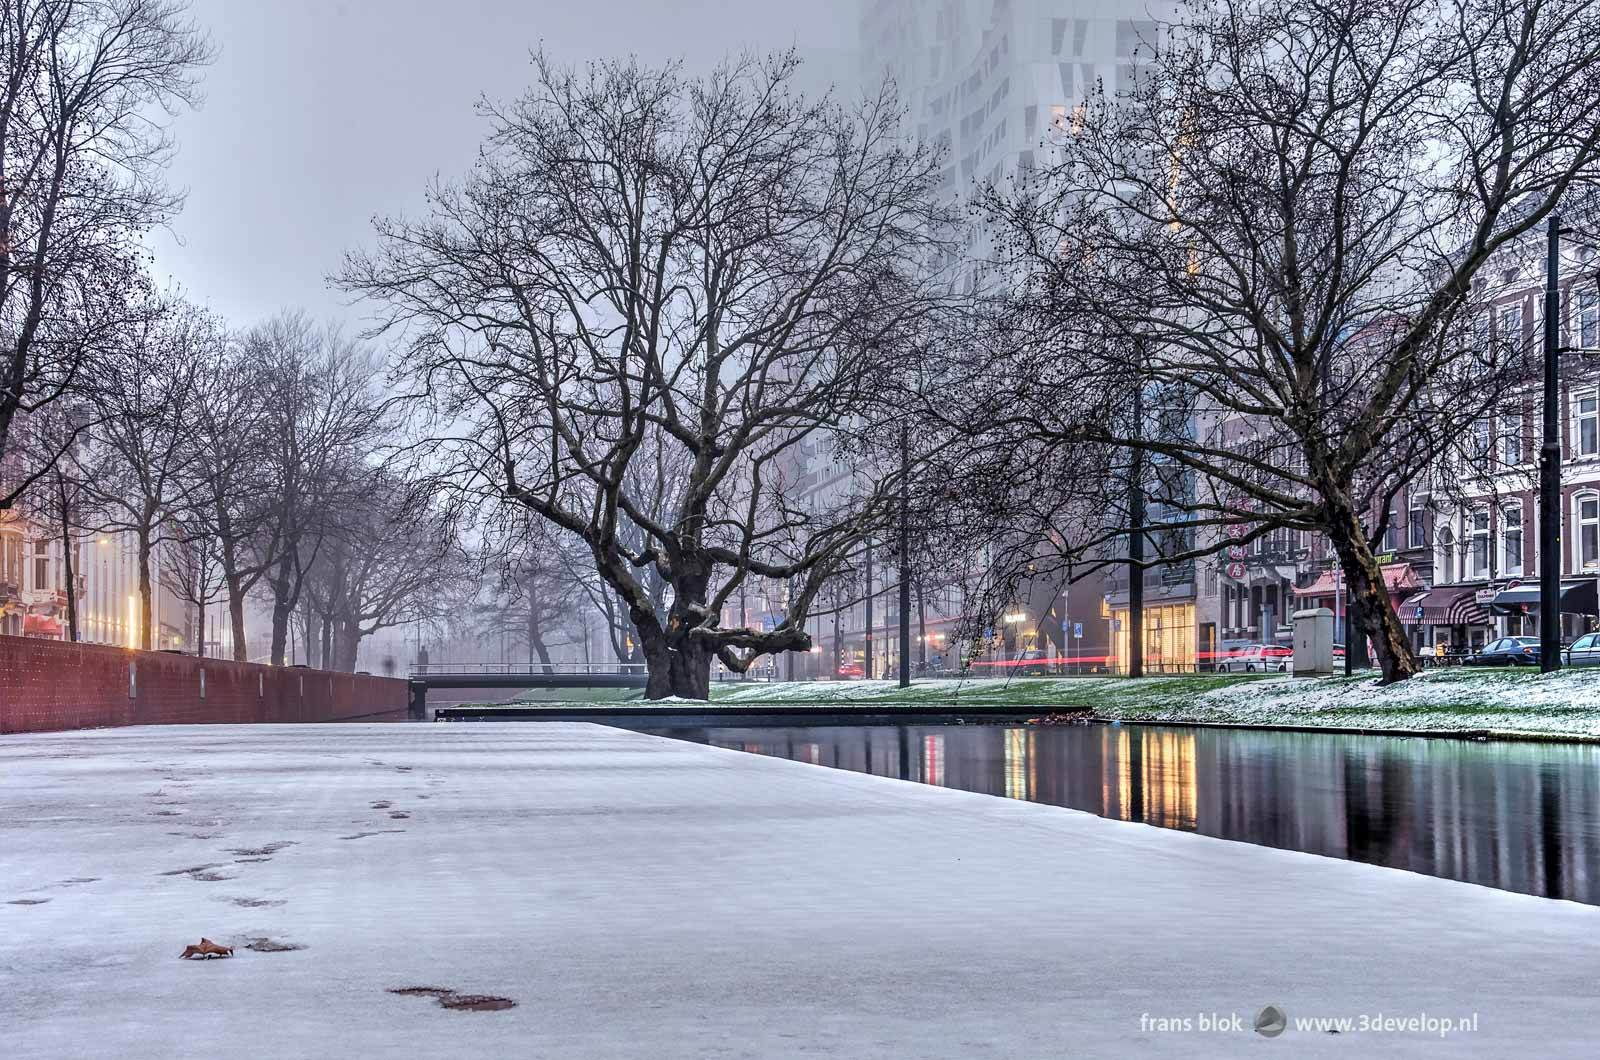 Photo made on a Sunday morning in december on the lower quay of Westersingel canal in Rotterdam, with a thin layer of snow, bare trees and the Calypso building almost disappearing in the mist